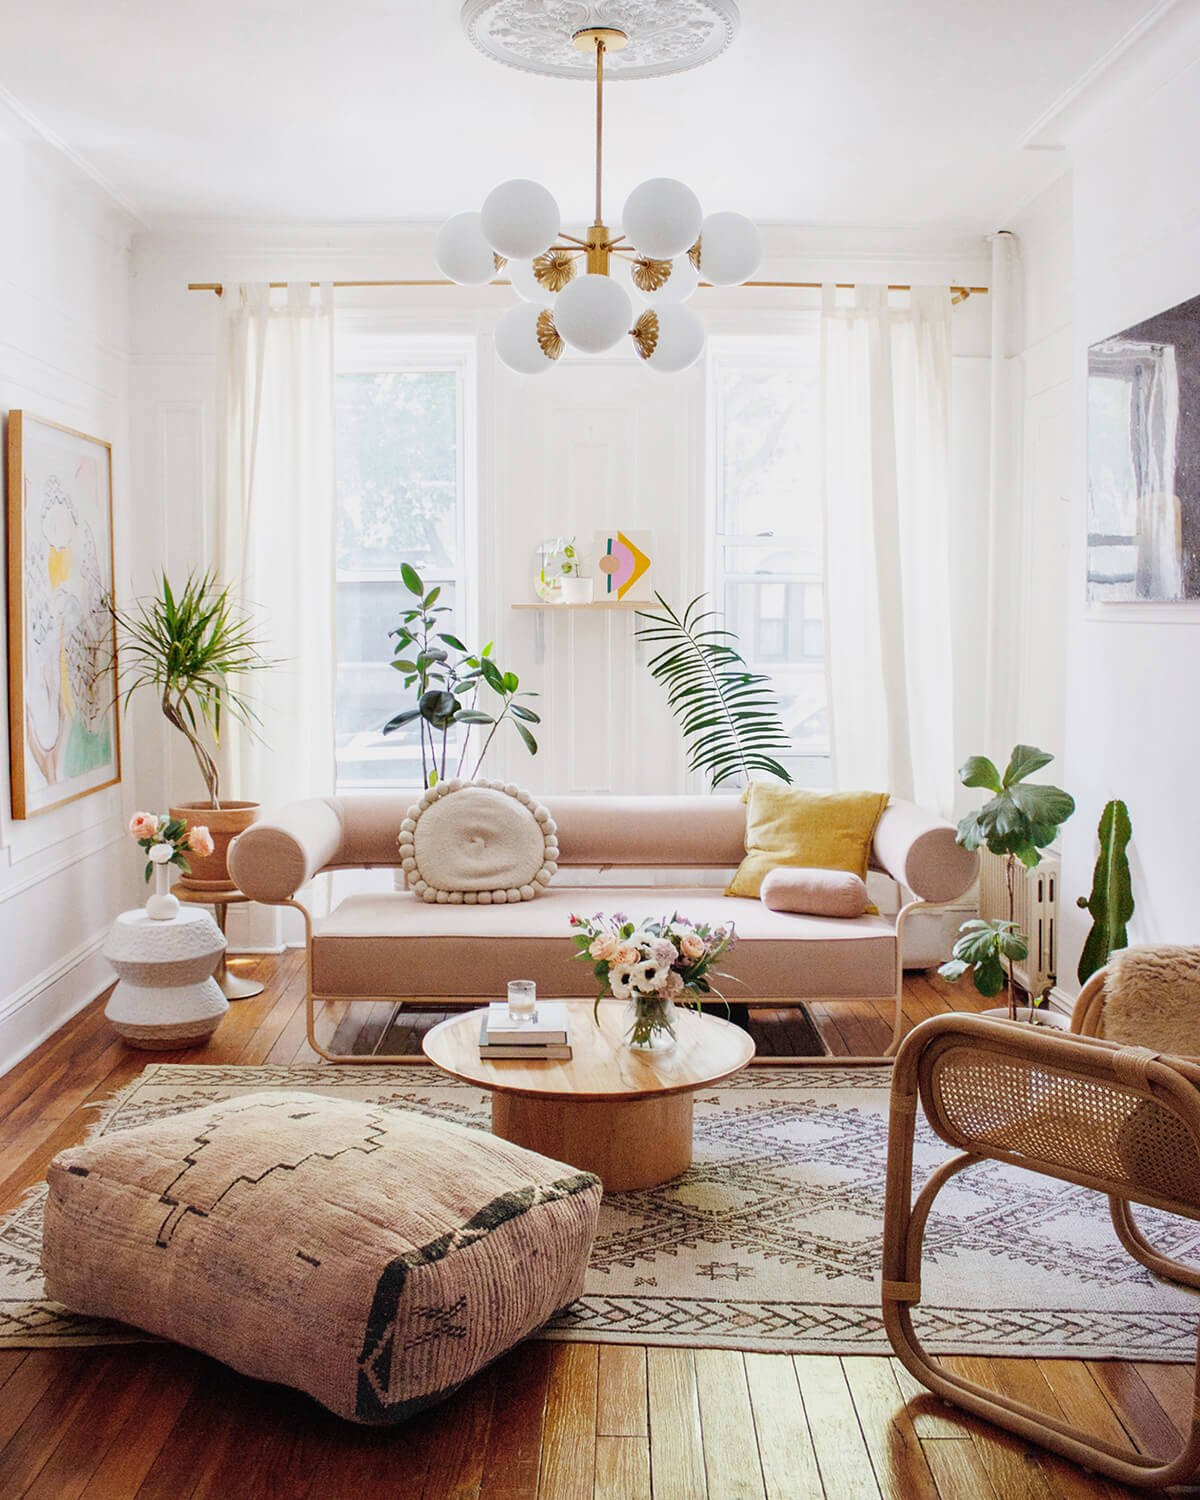 Apartment Living Room Decor Ideas 20 Best Small Apartment Living Room Decor and Design Ideas